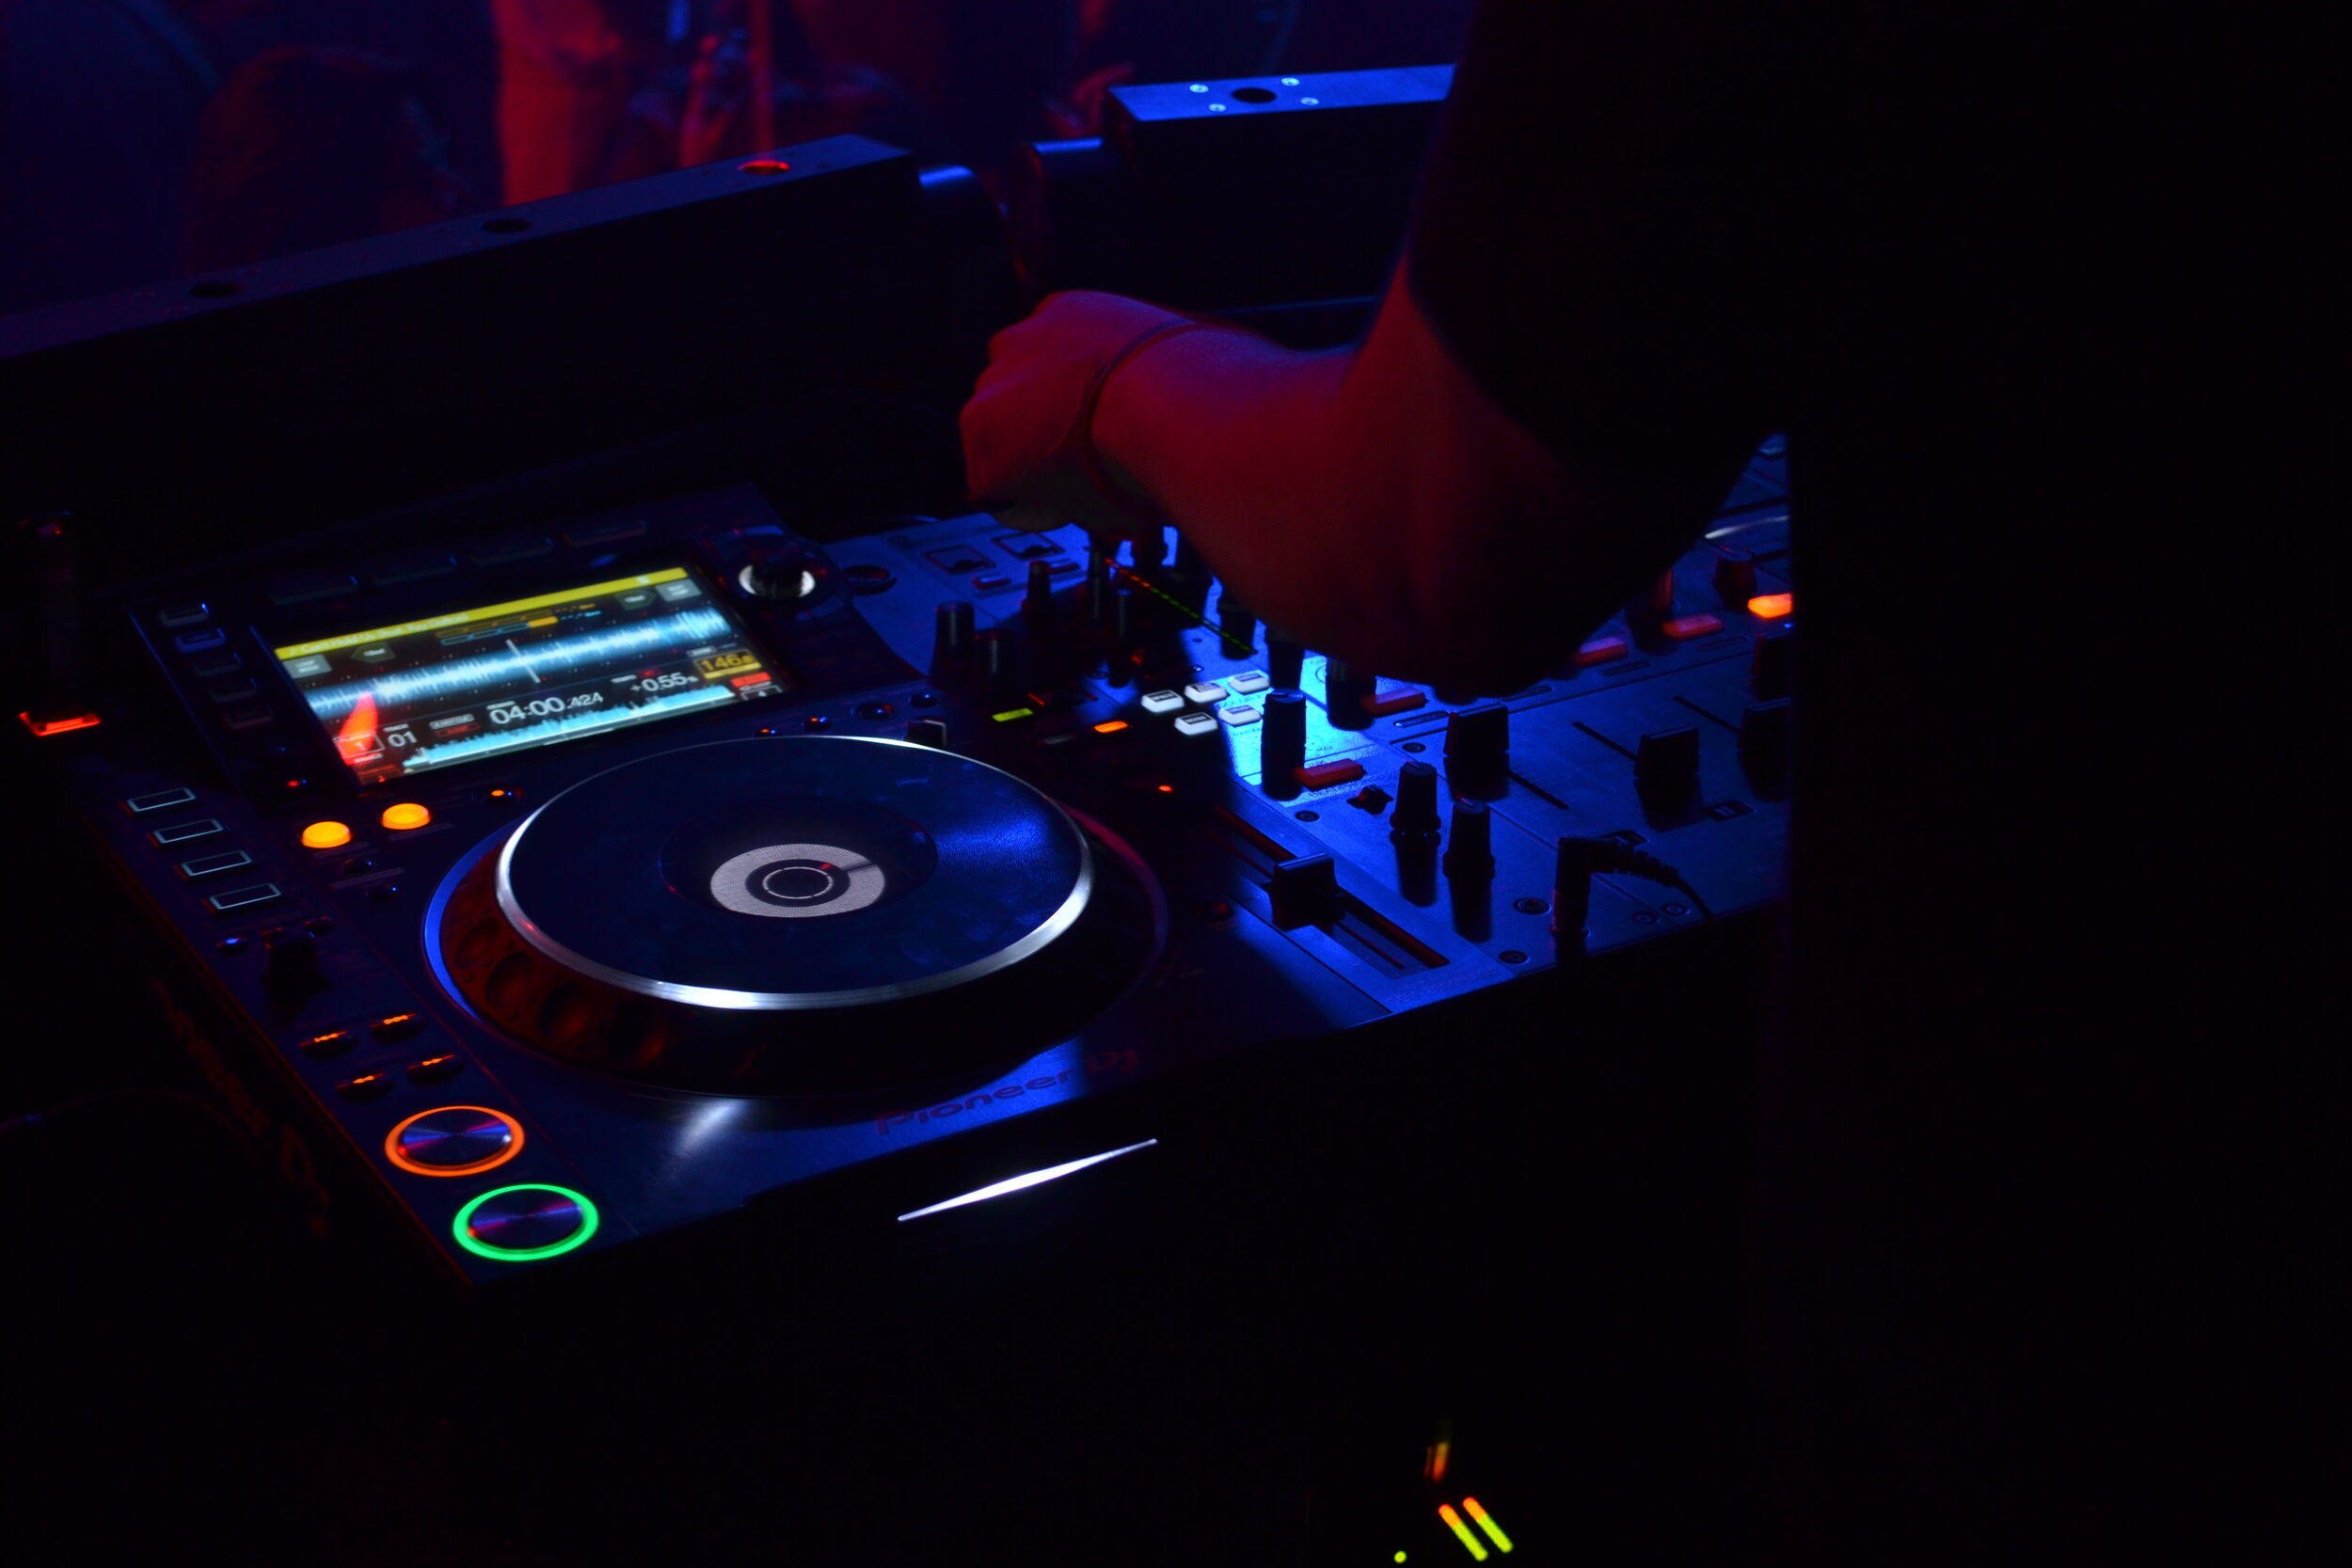 DJING - Weddings, parties & gatherings; we have all the elements to make your celebration memorable.